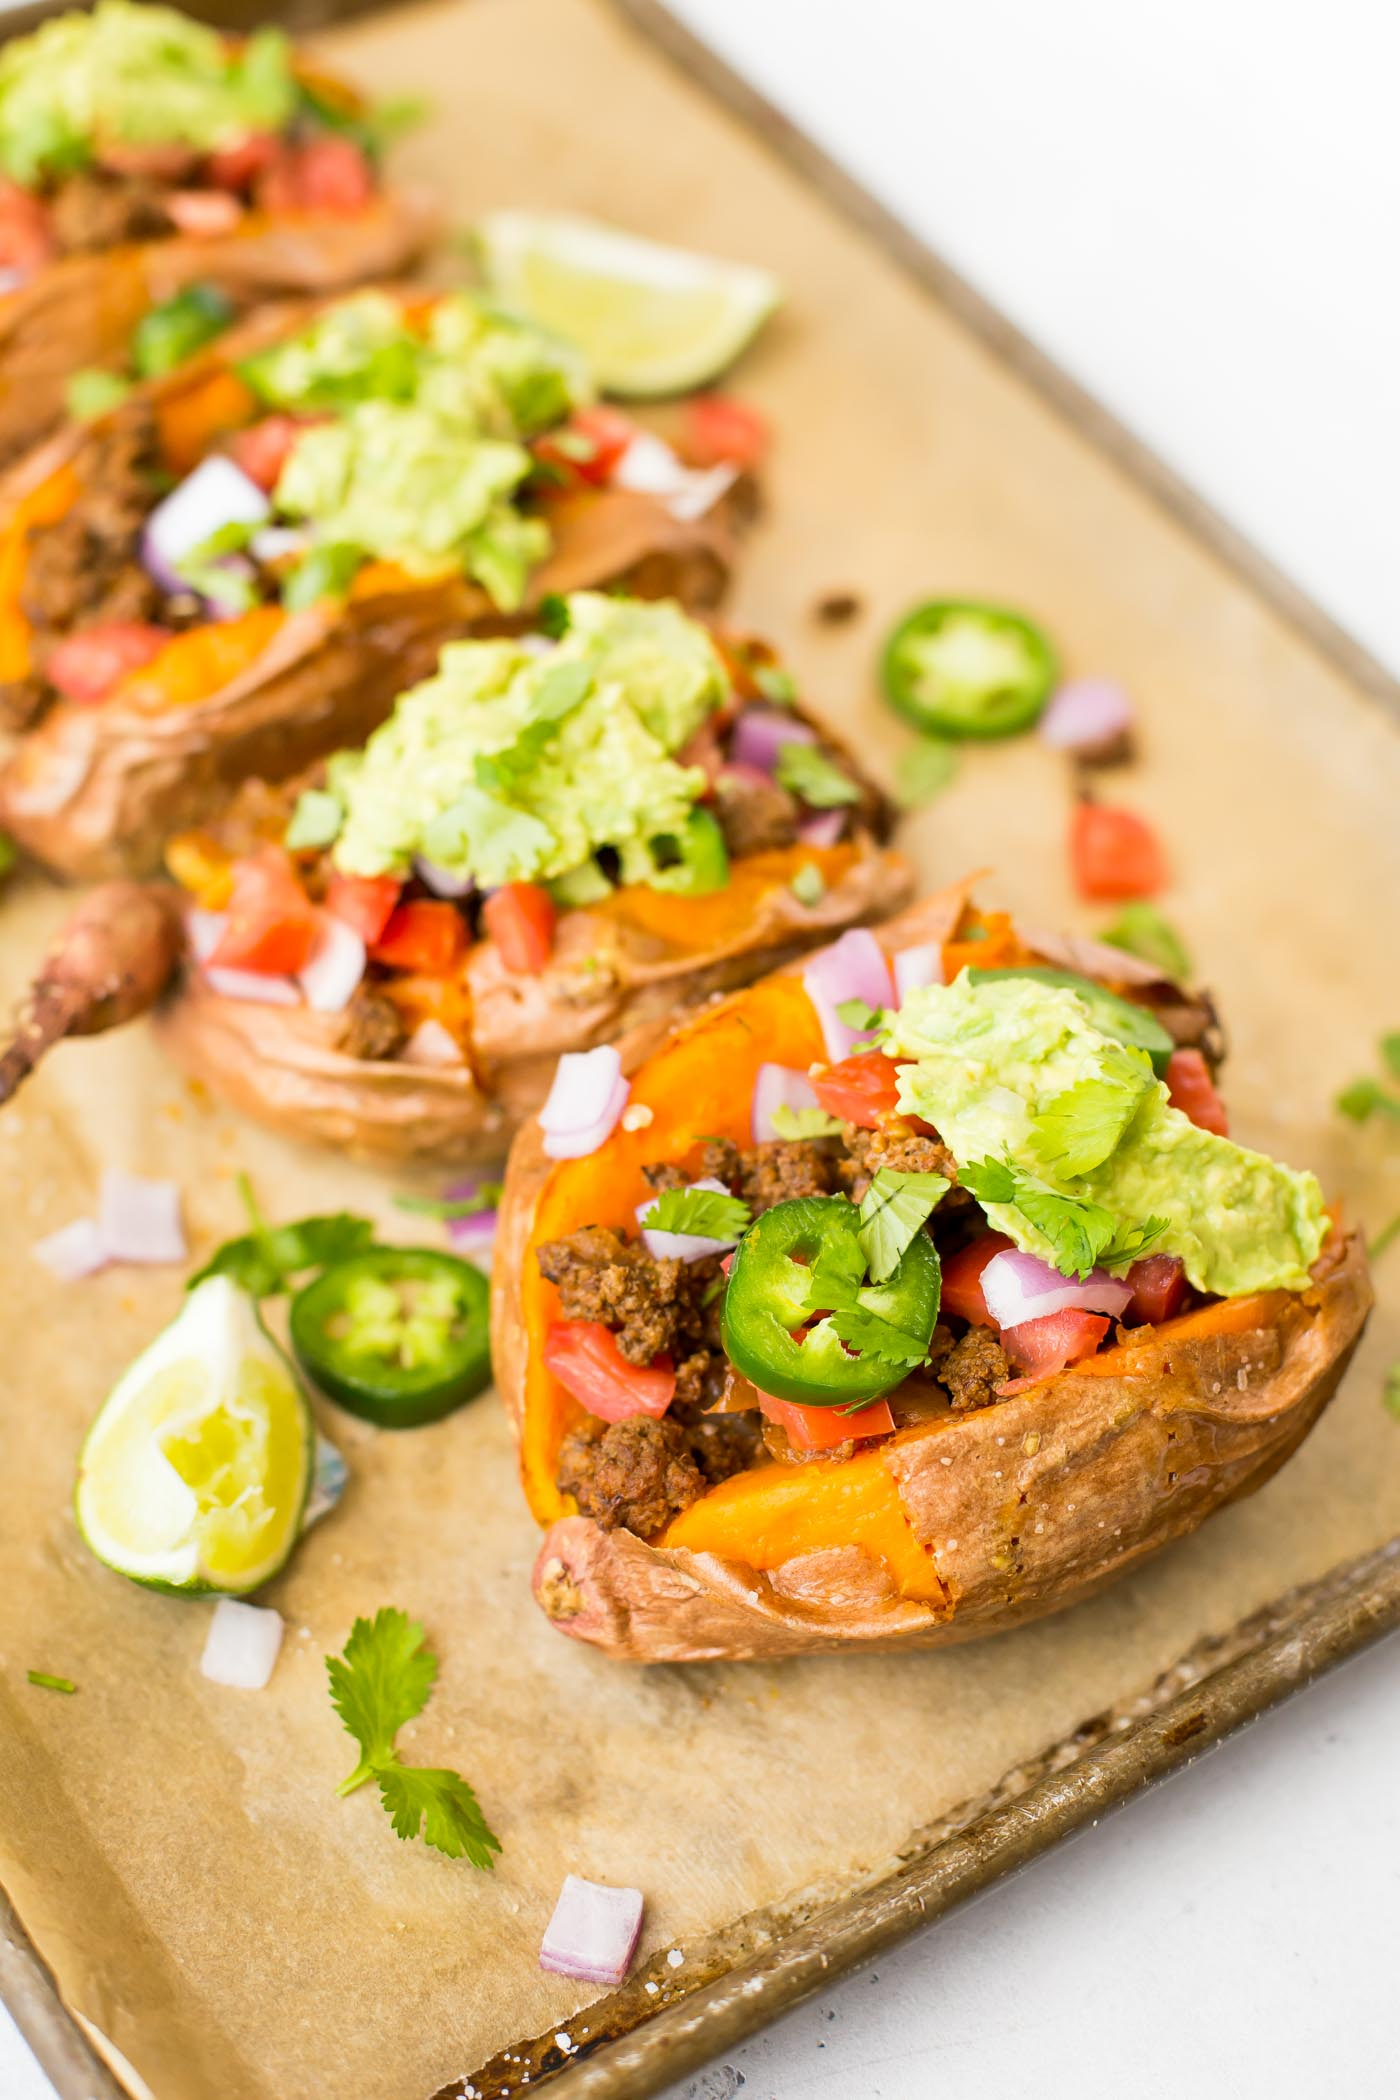 Stuffed Sweet Potatoes with ground beef, jalapenos, smashed avocado, diced tomato and onion on baking sheet